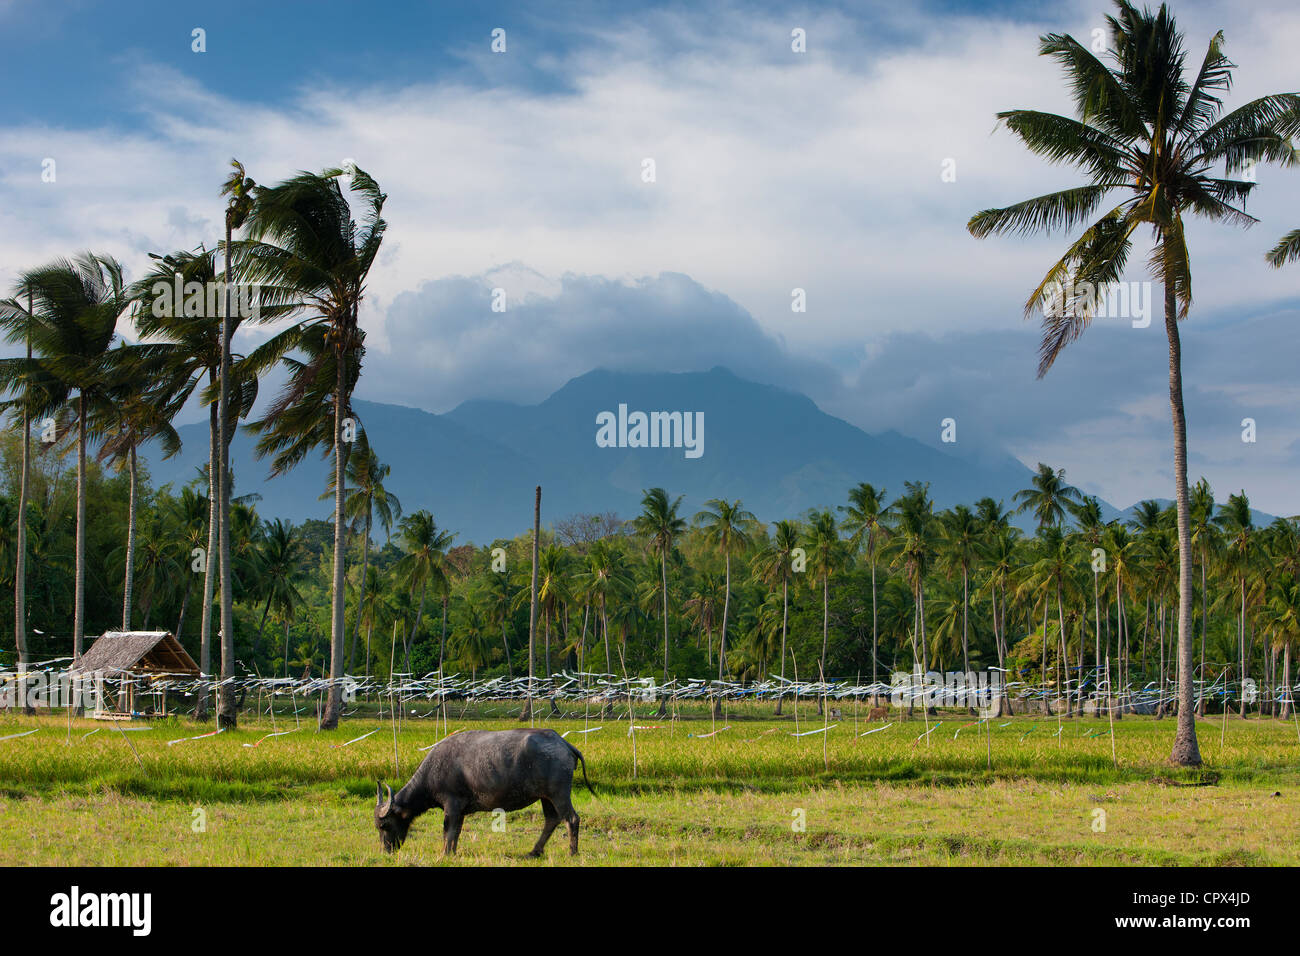 a buffalo grazing with rice fields, palm trees & mountains beyond, nr Malatapay, Negros, Philippines - Stock Image